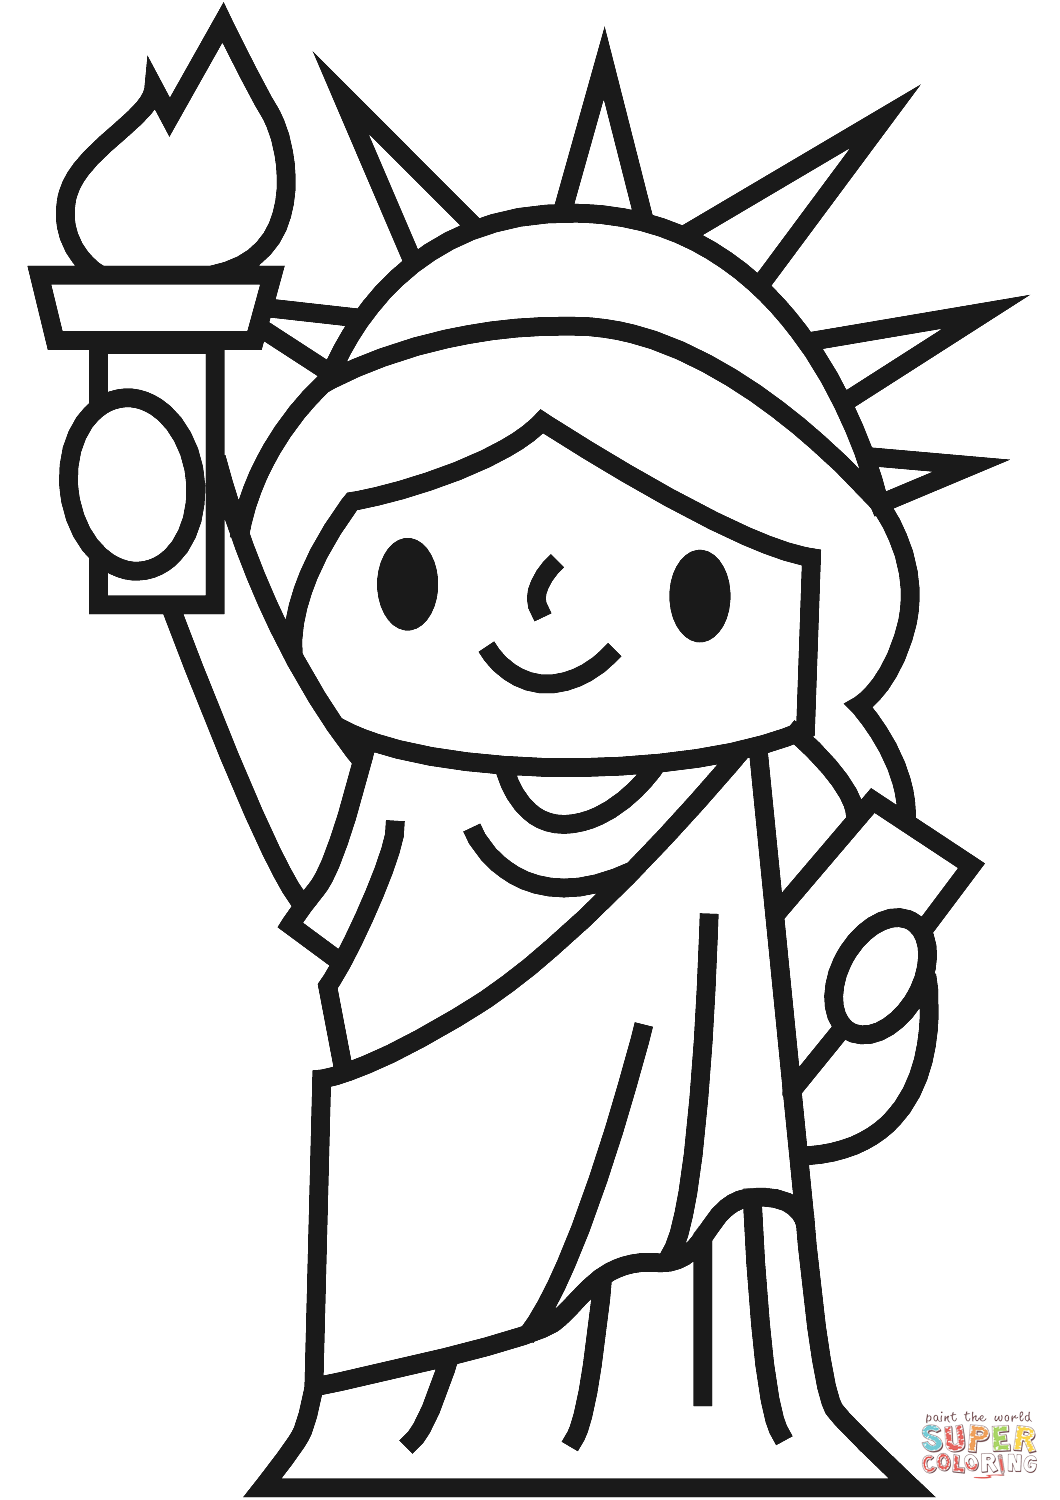 Simple Statue of Liberty coloring page.